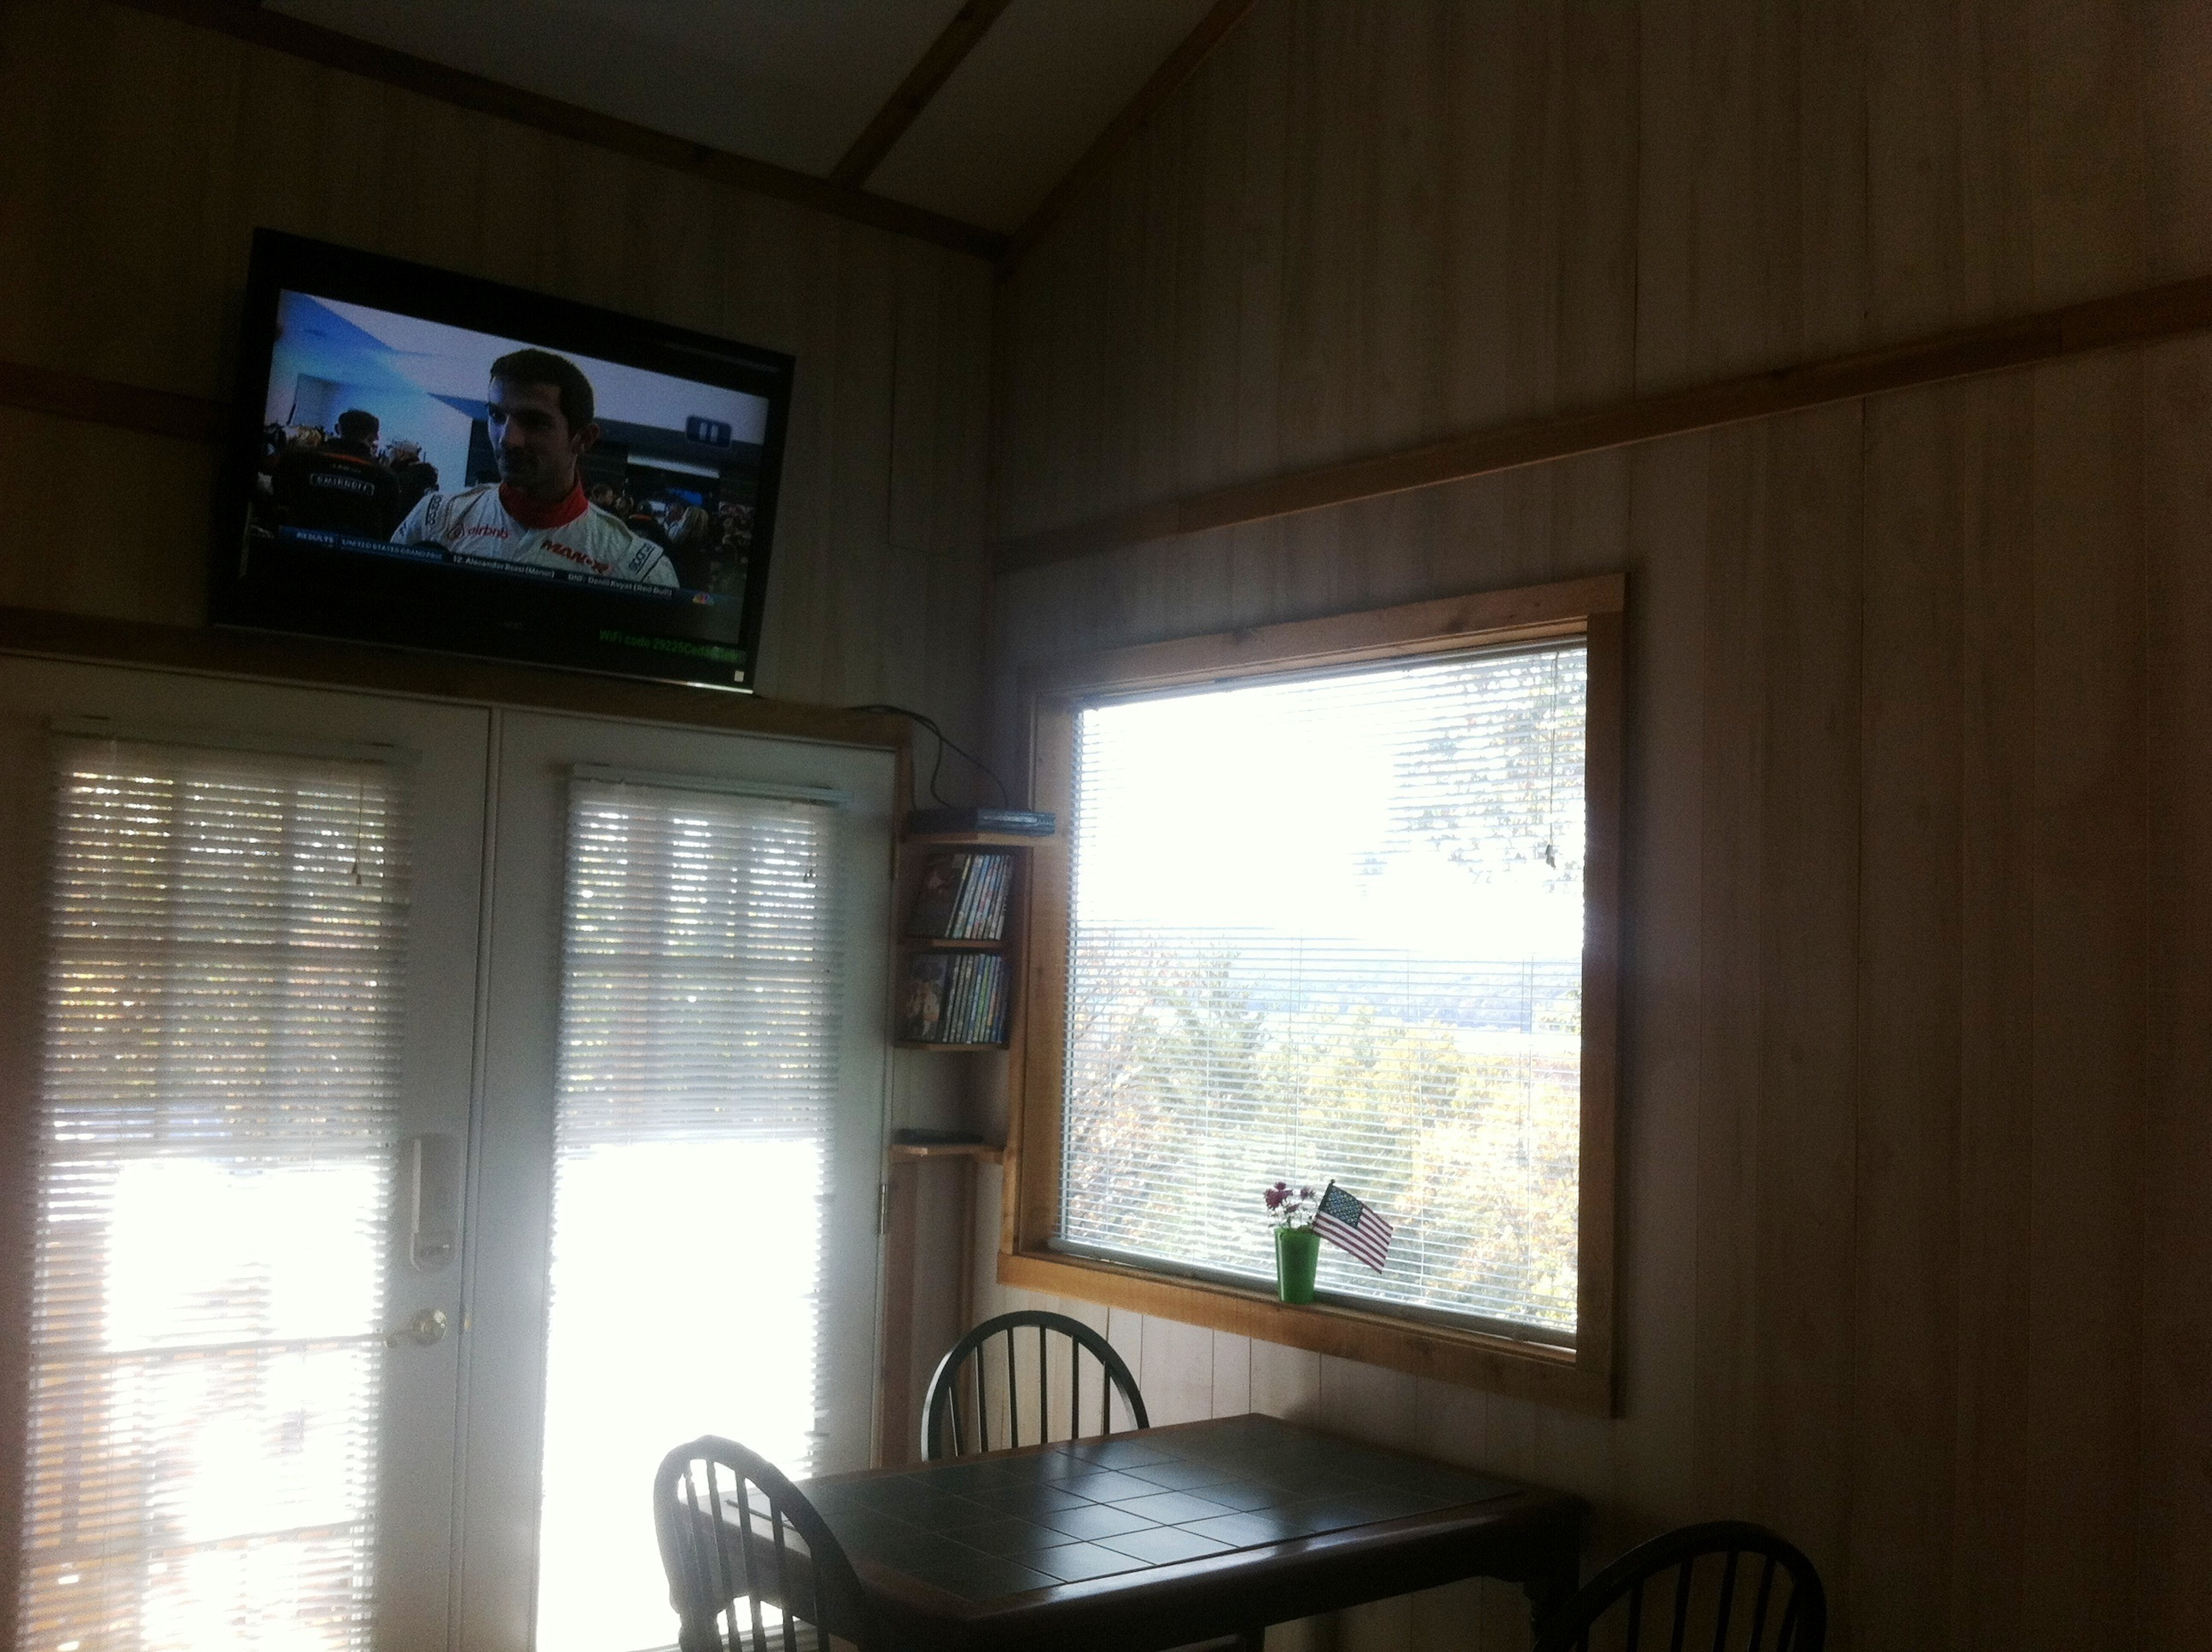 system parks reservation campsite search tk campground park resz app cabins tenkiller lake oklahoma state